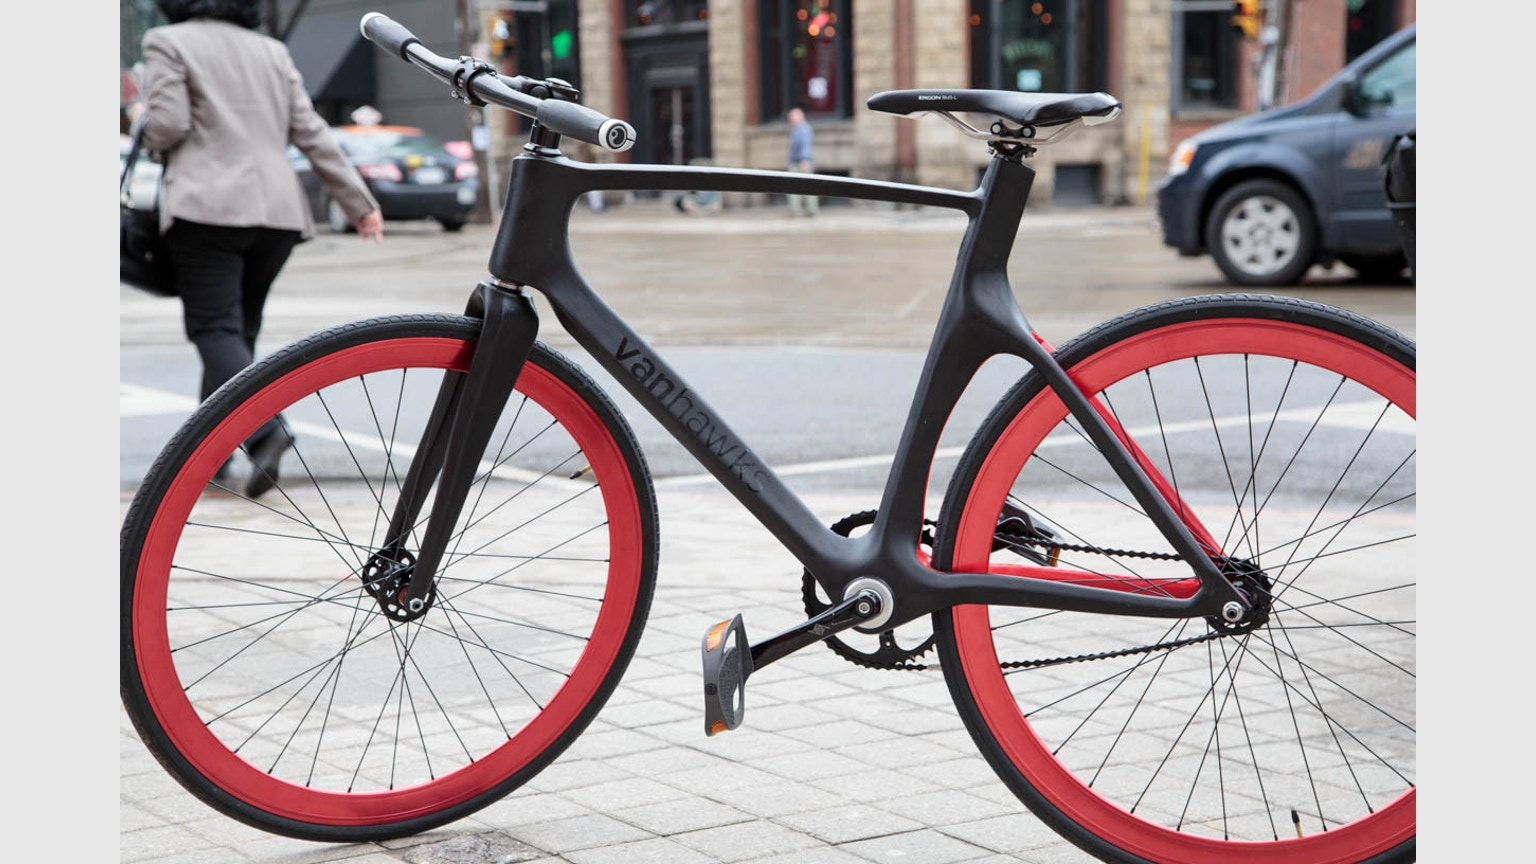 Vanhawks Valour First Ever Connected Carbon Fibre